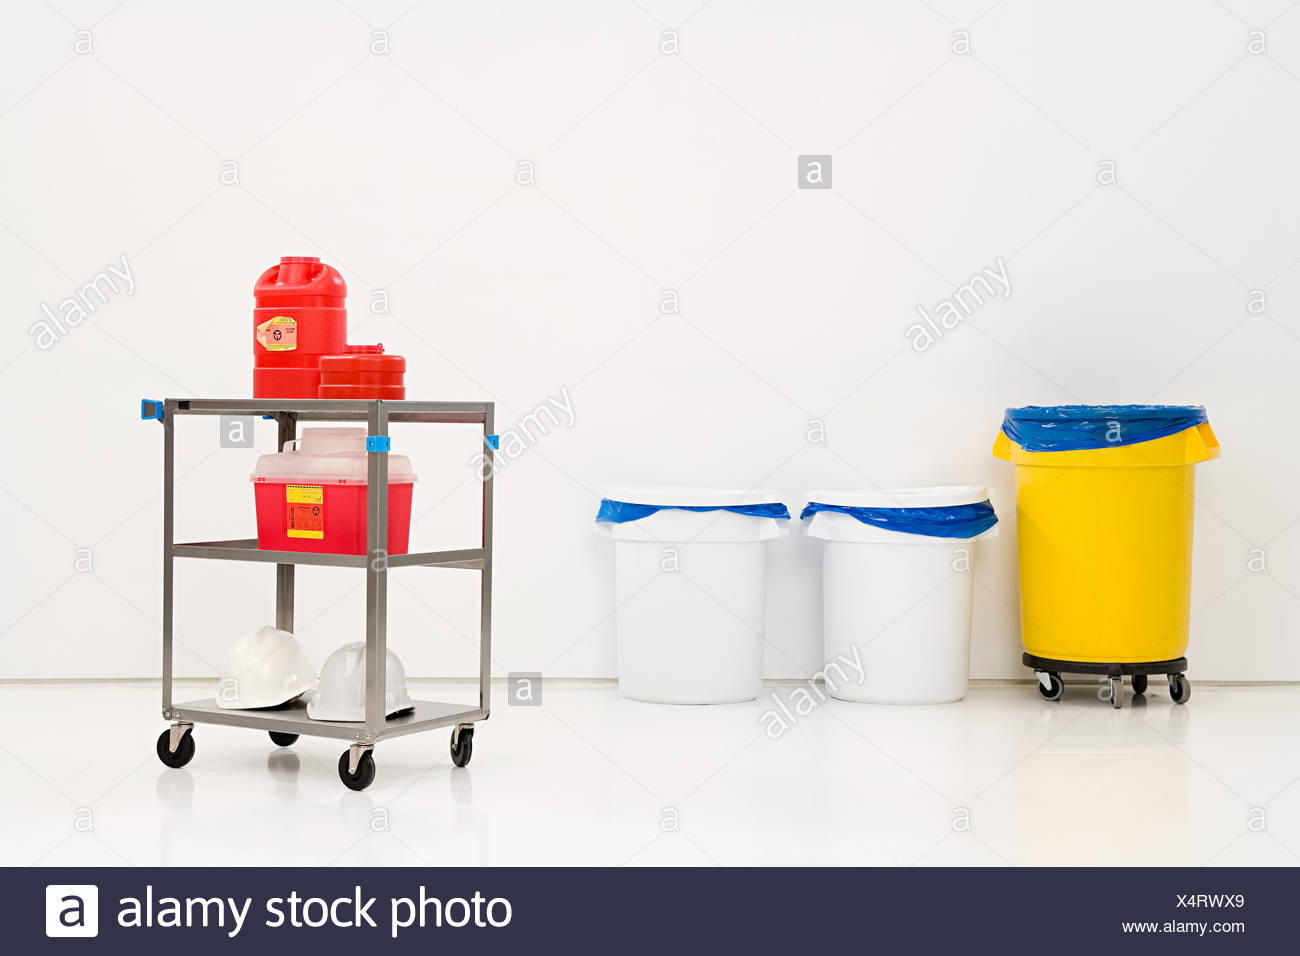 Chemical waste and bins - Stock Image